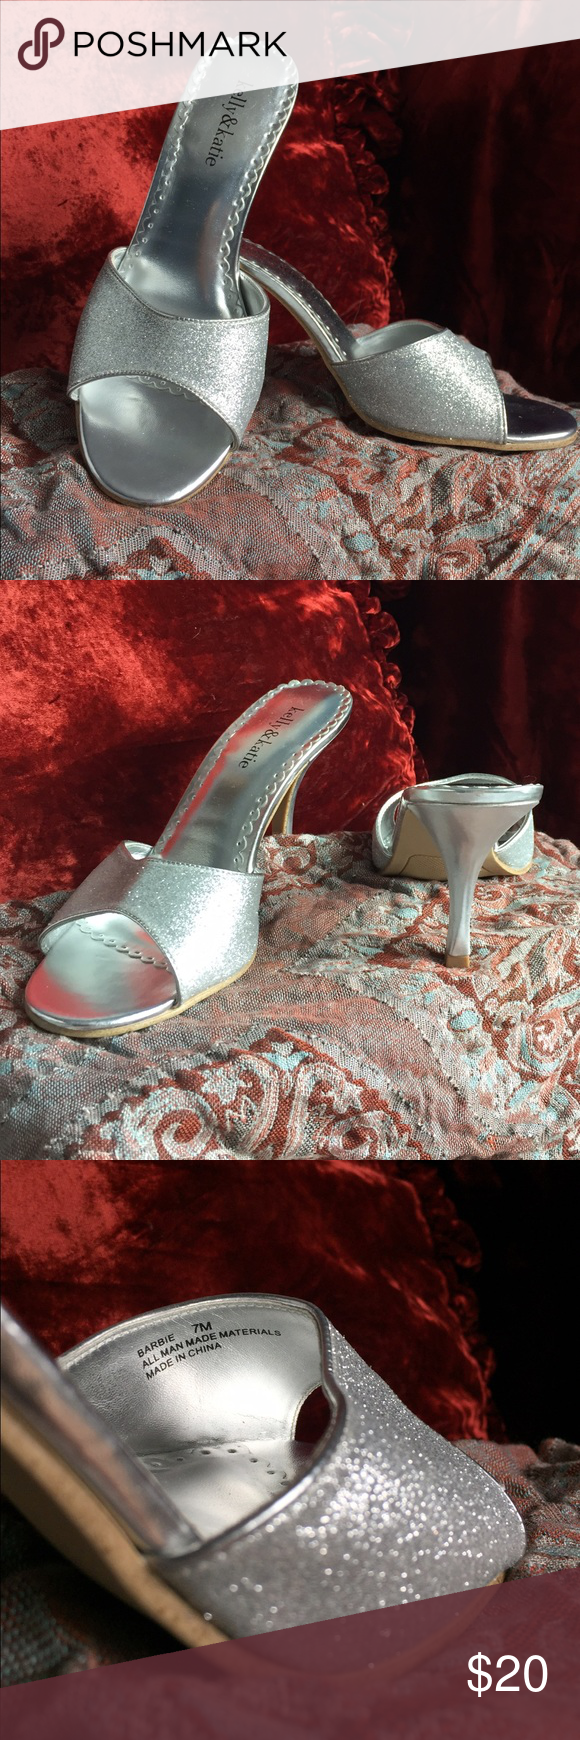 Kelly and Katie glitter Barbie kitten heel sandal These silver glitter peep toes have never been worn. Perfect heel height, can be a dressy sandal for a day at the resort or the perfect shoe for an evening out. Kelly and Katie, Barbie 7M Kelly & Katie Shoes Heels